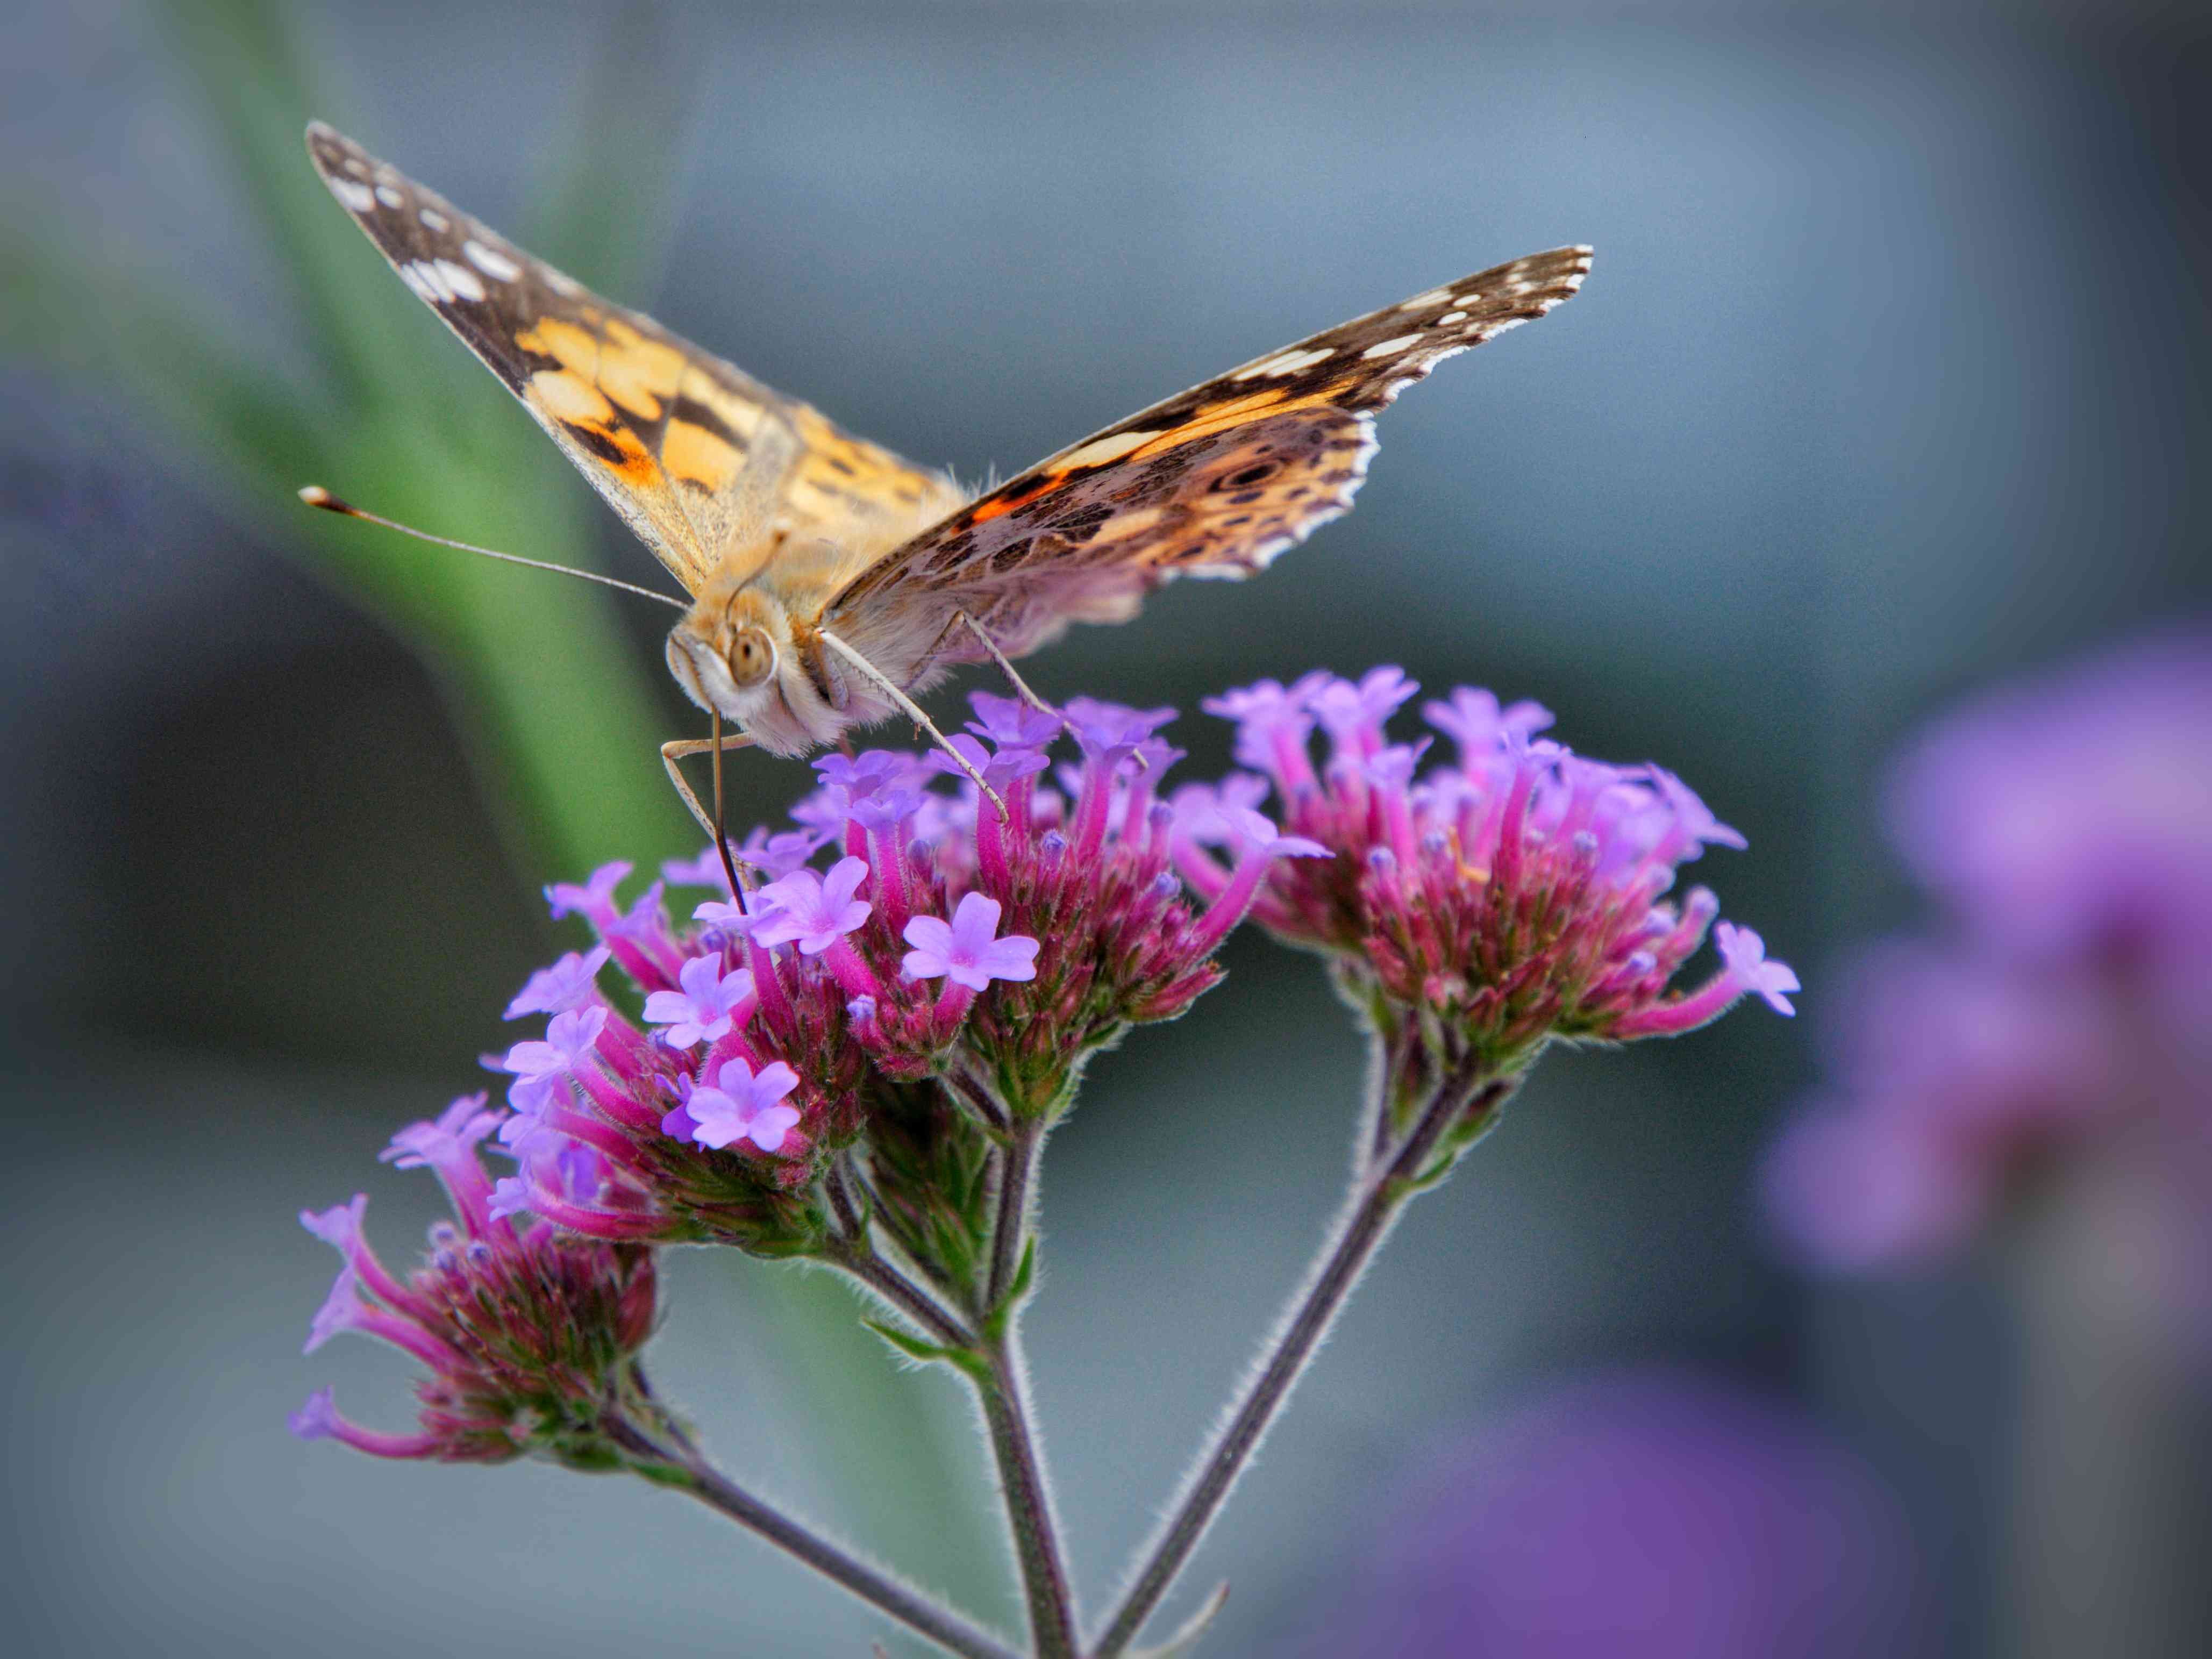 Close-Up Of British Butterfly Pollinating On Purple Flower